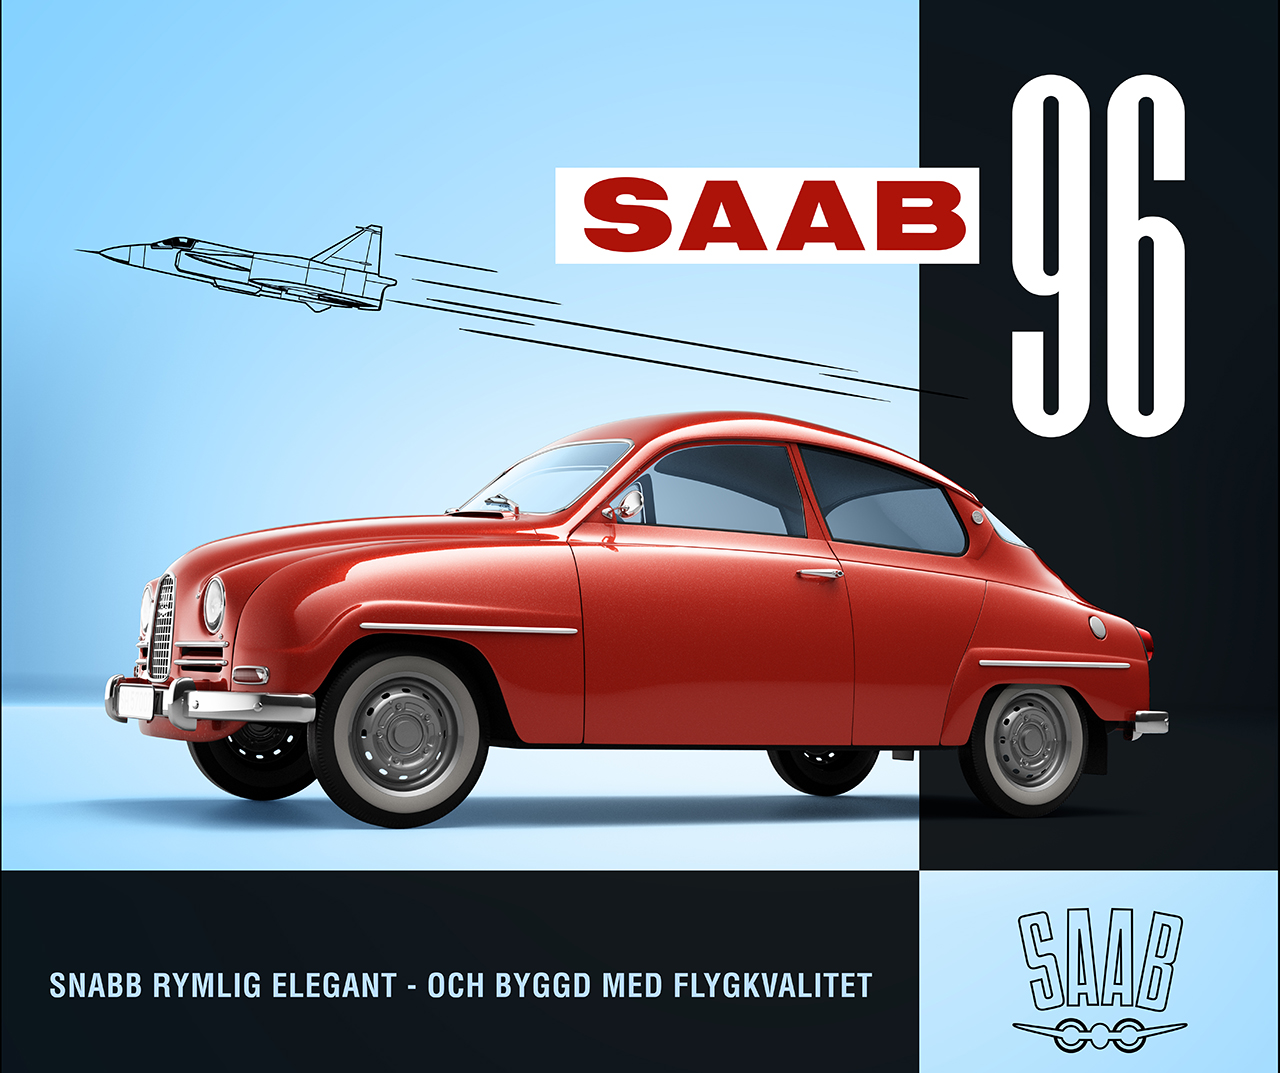 SAAB 96 1968 v4 box design retopo 3d model of red car from the 60